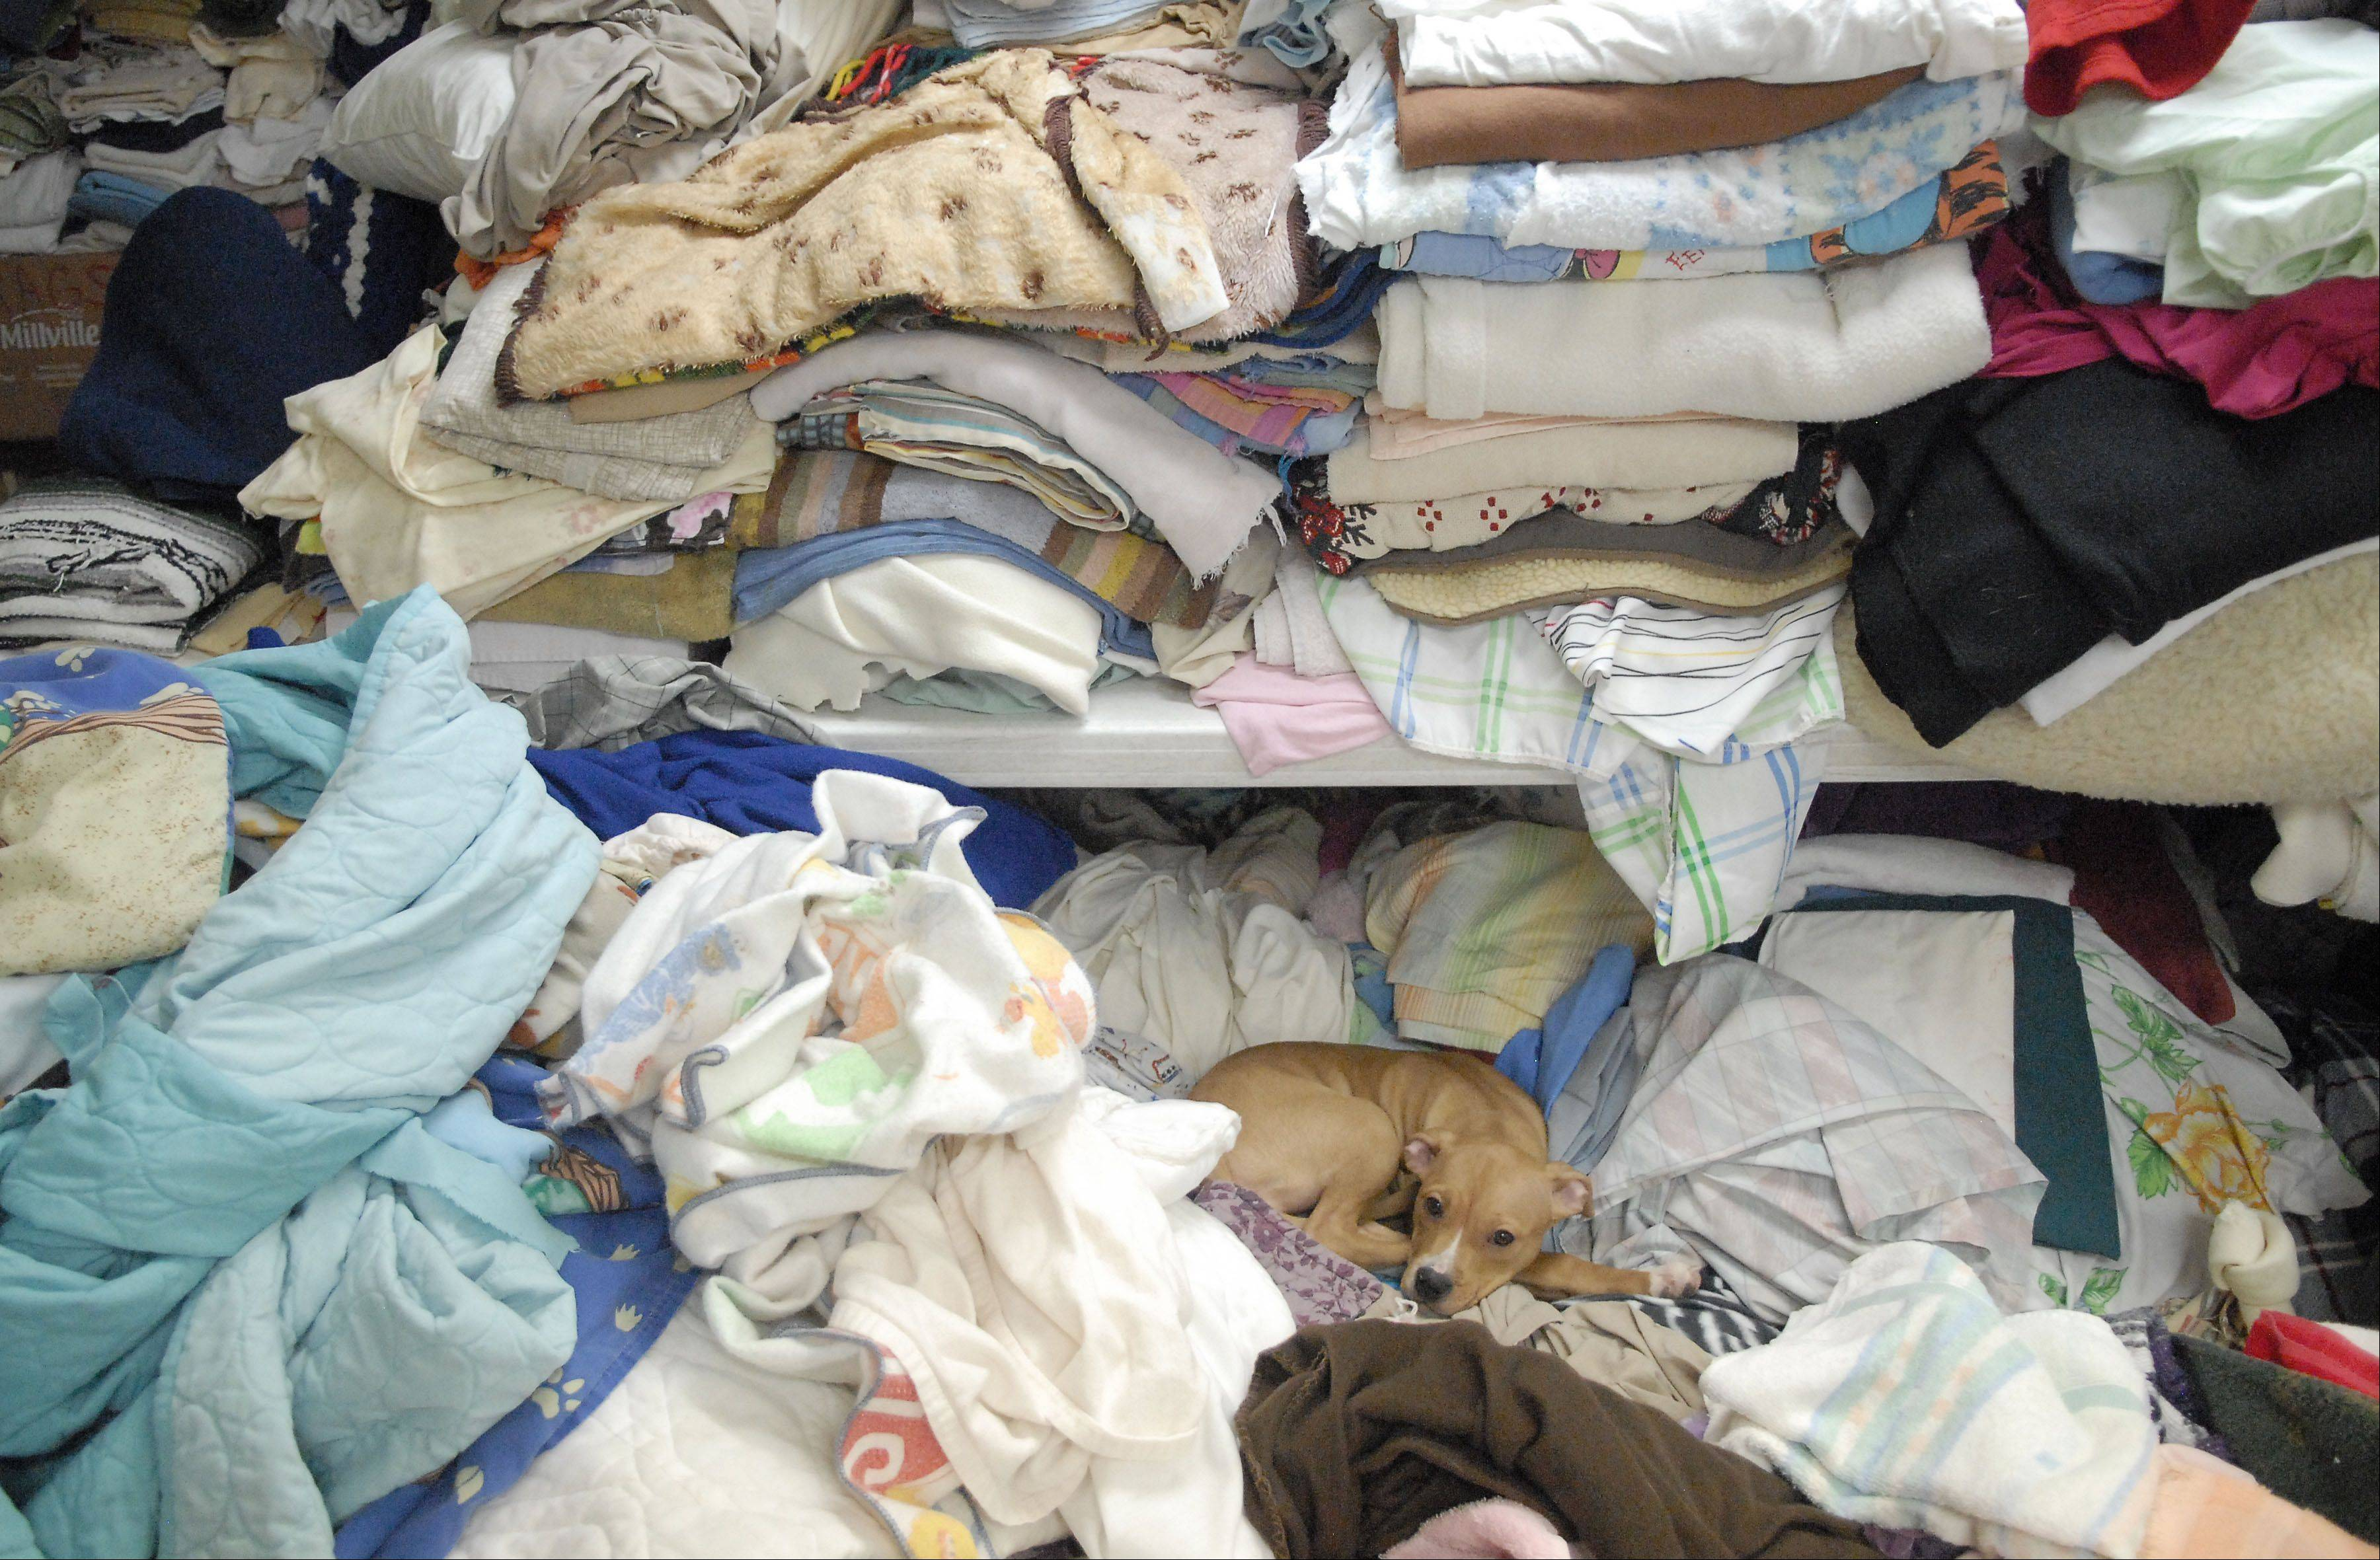 Three-month-old Fergie the Dog awakes from her nap atop a pile of bedding headed for the wash.